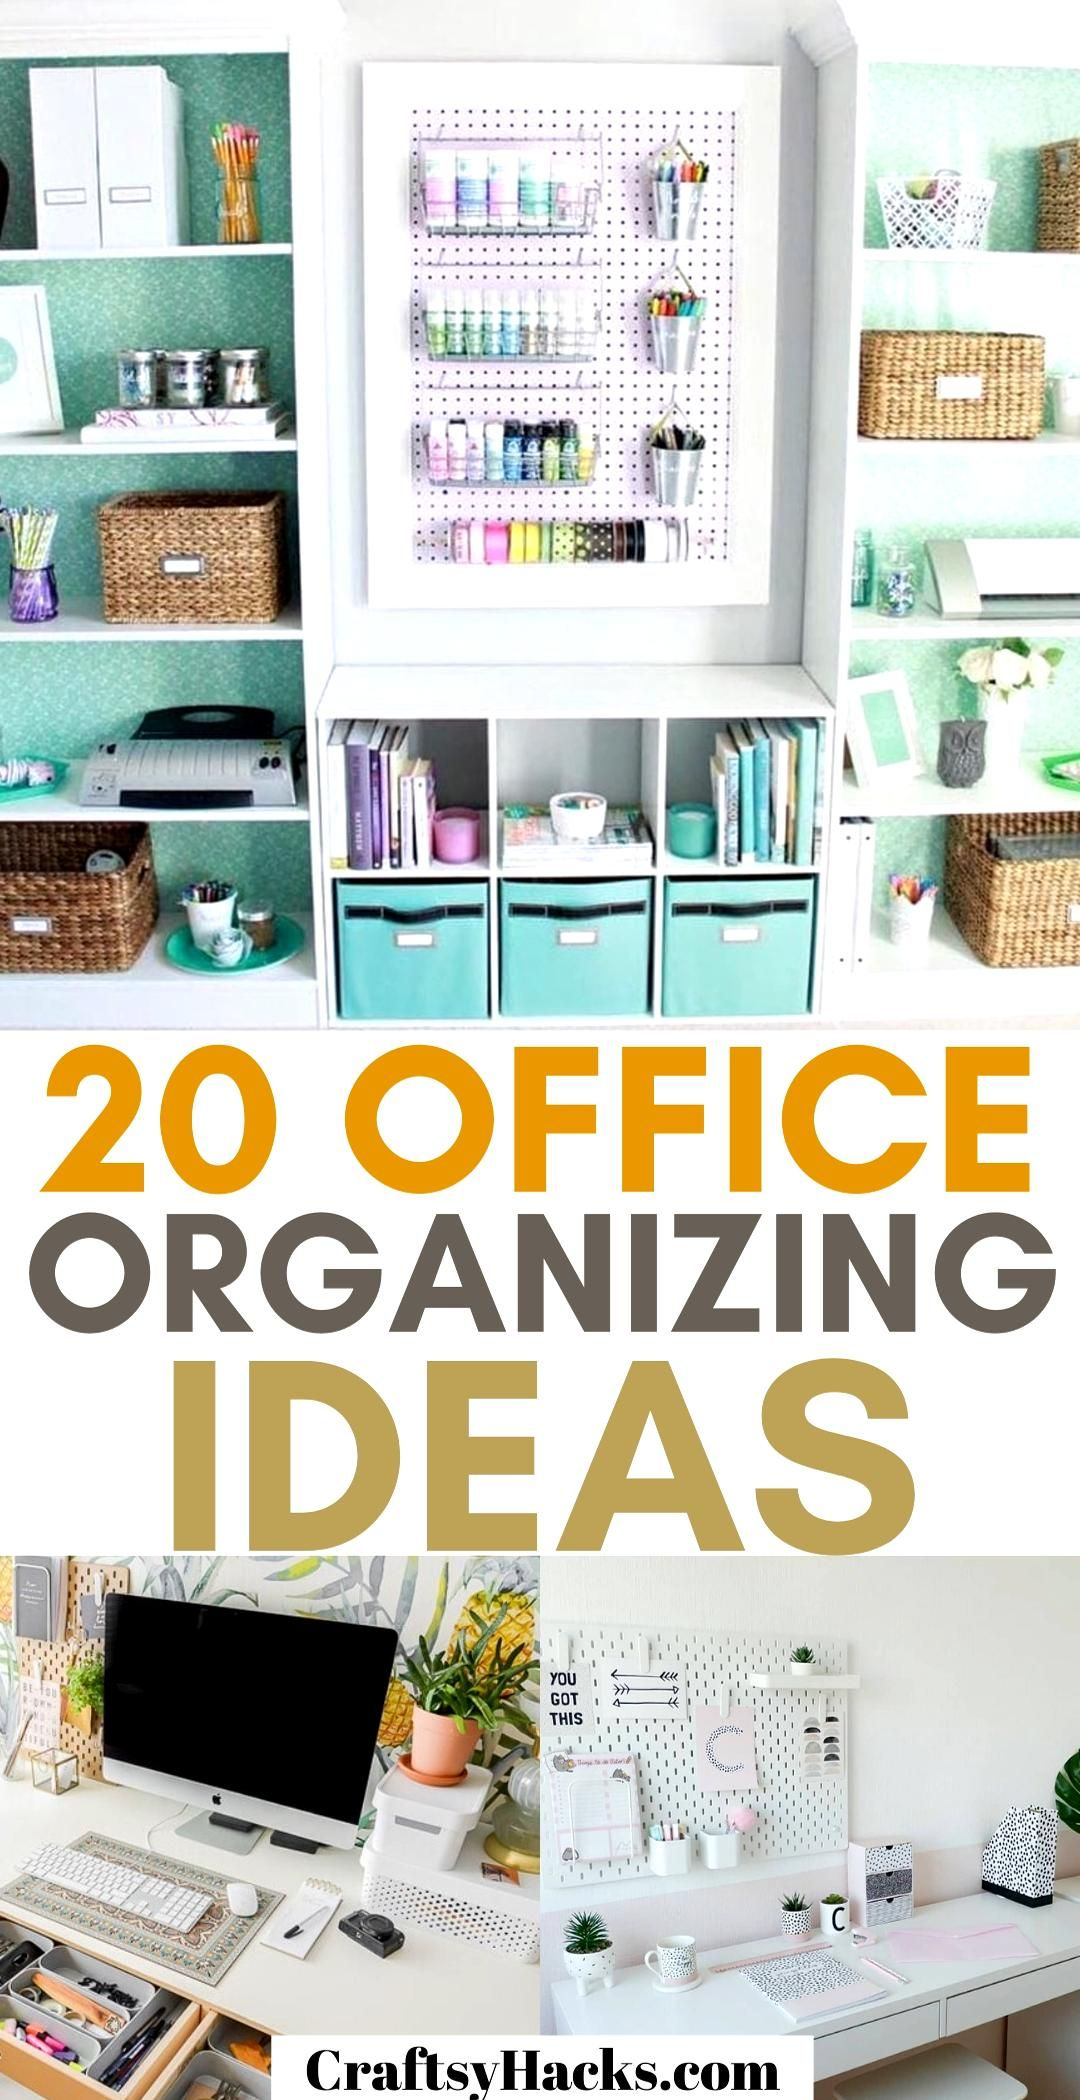 20 Office Organizing Ideas -   19 diy Organization desk ideas